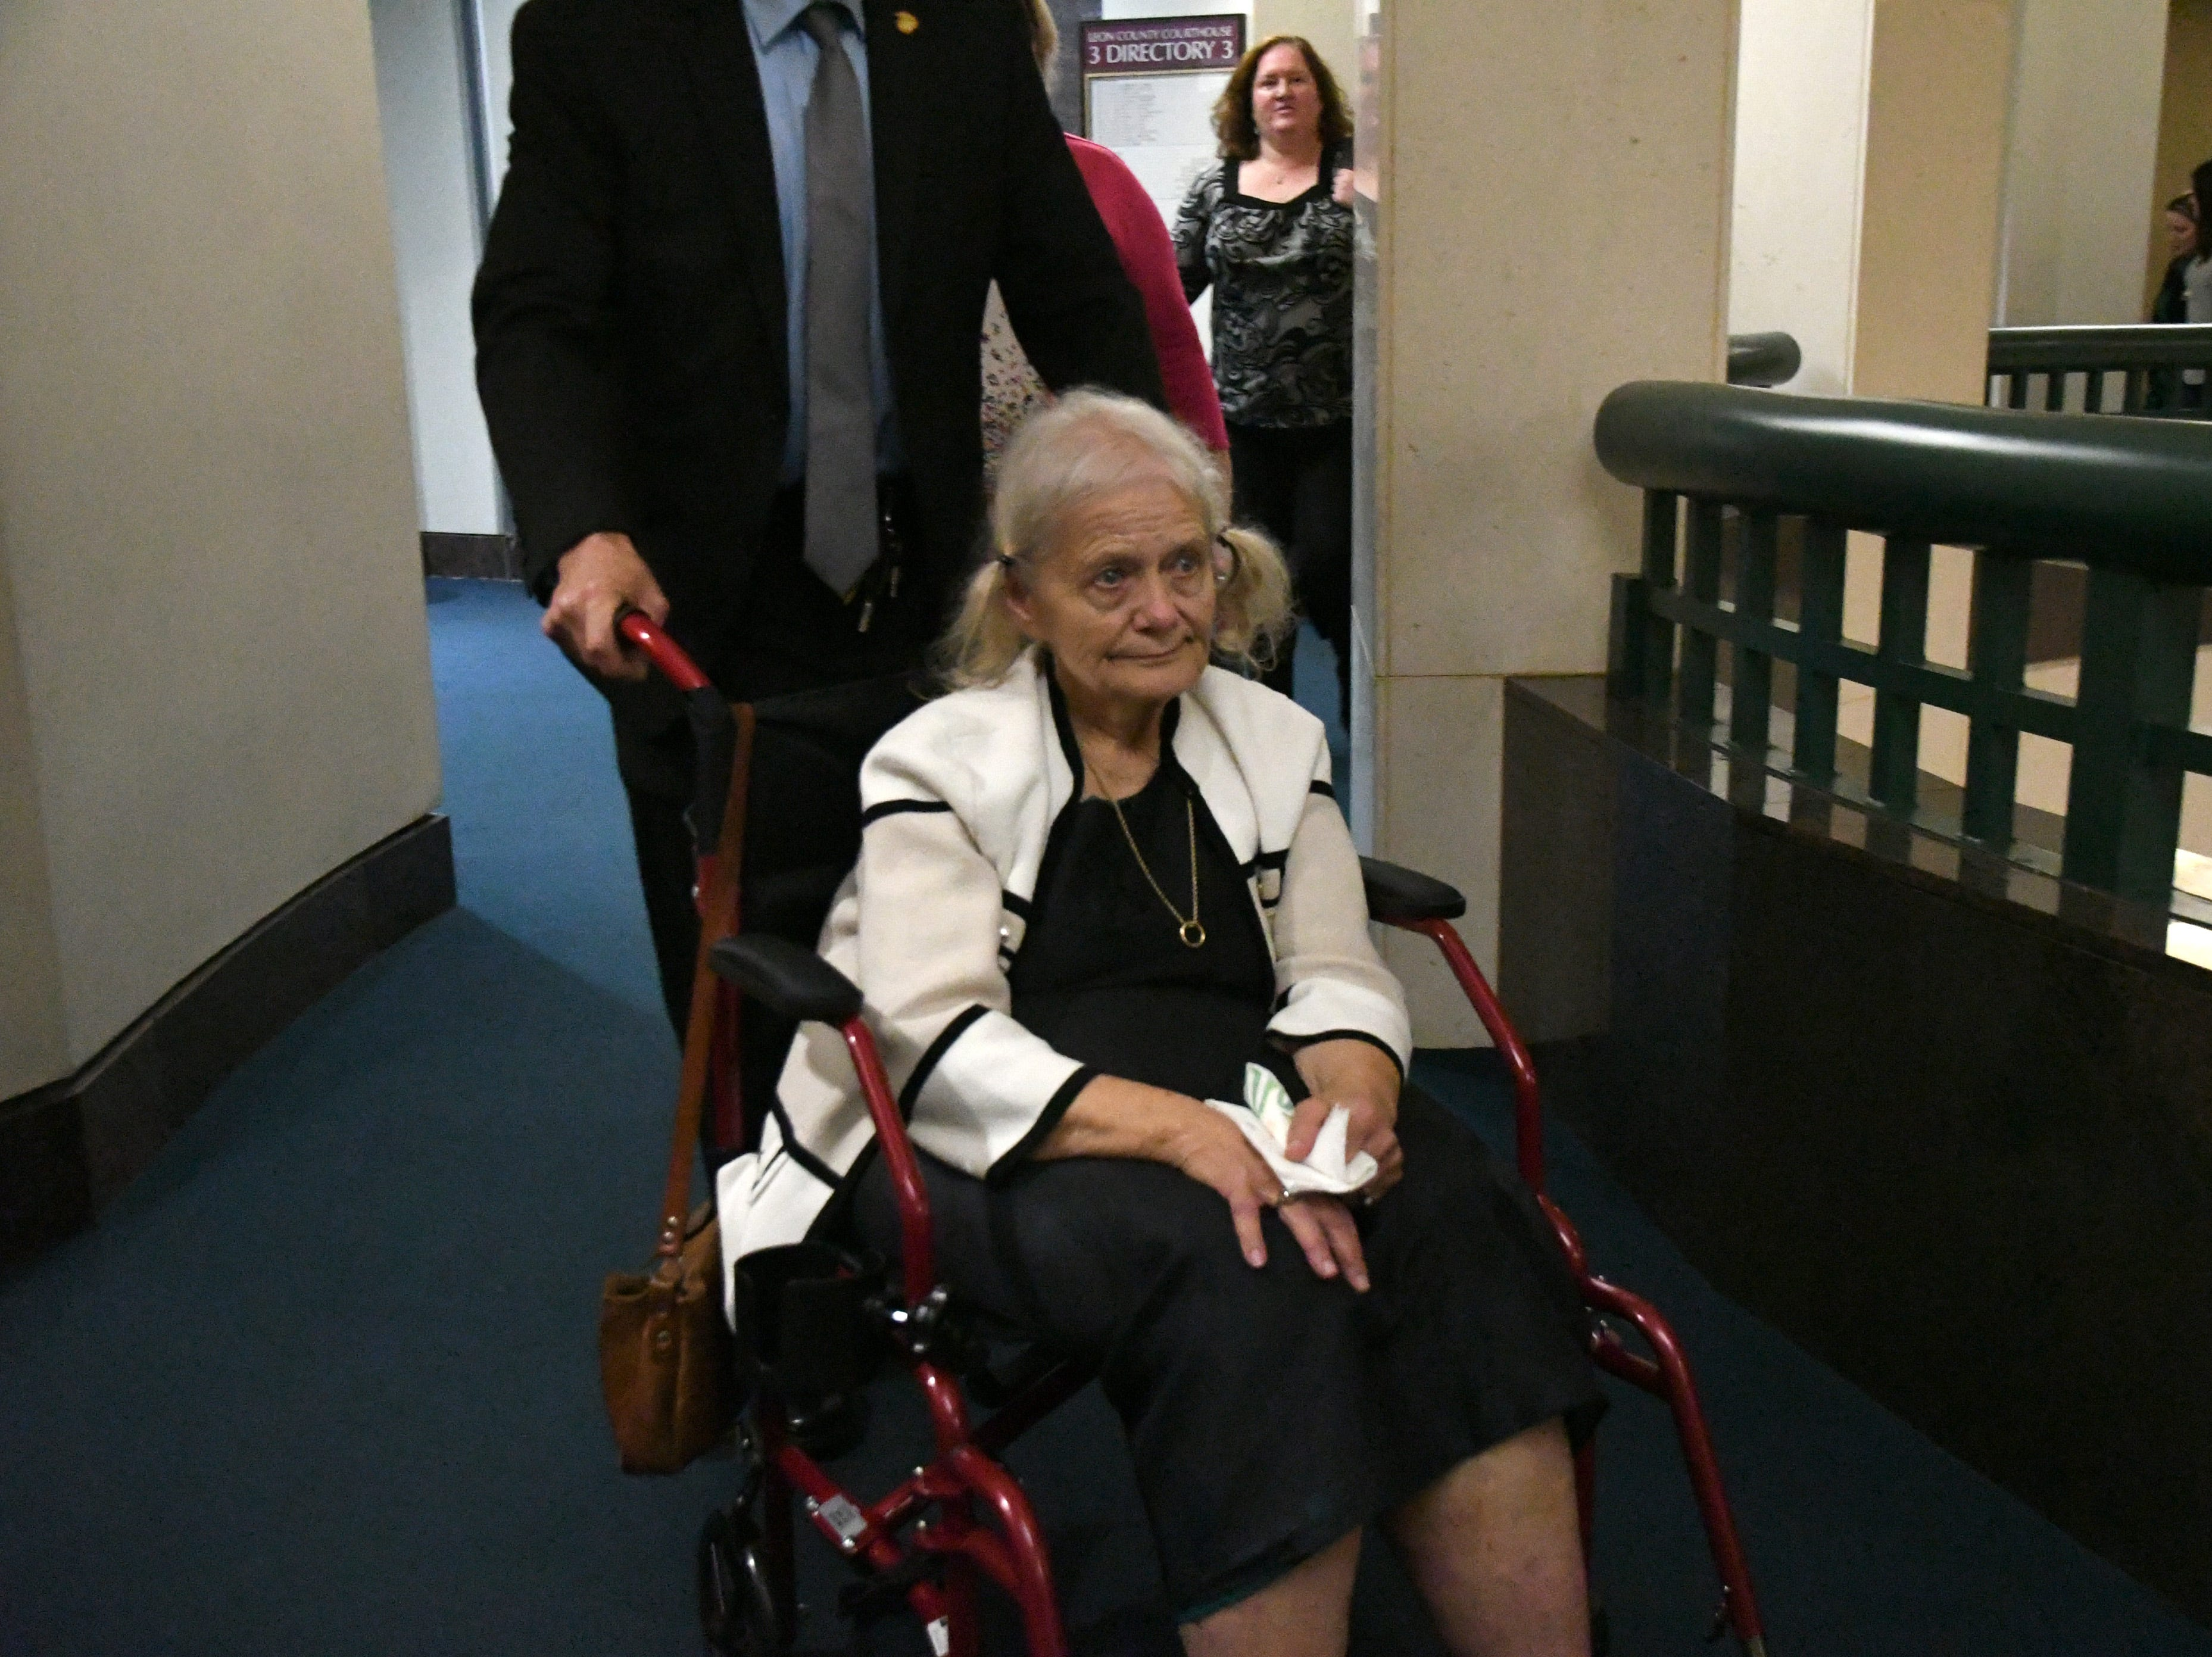 Cheryl Williams, mother of Mike Williams, the man who was shot and killed by his high school best friend Brian Winchester 18 years ago, gets wheeled into the courtroom to hear the verdict in the trial against Denise Williams for the murder of Mike Williams, Friday, Dec. 14, 2018.